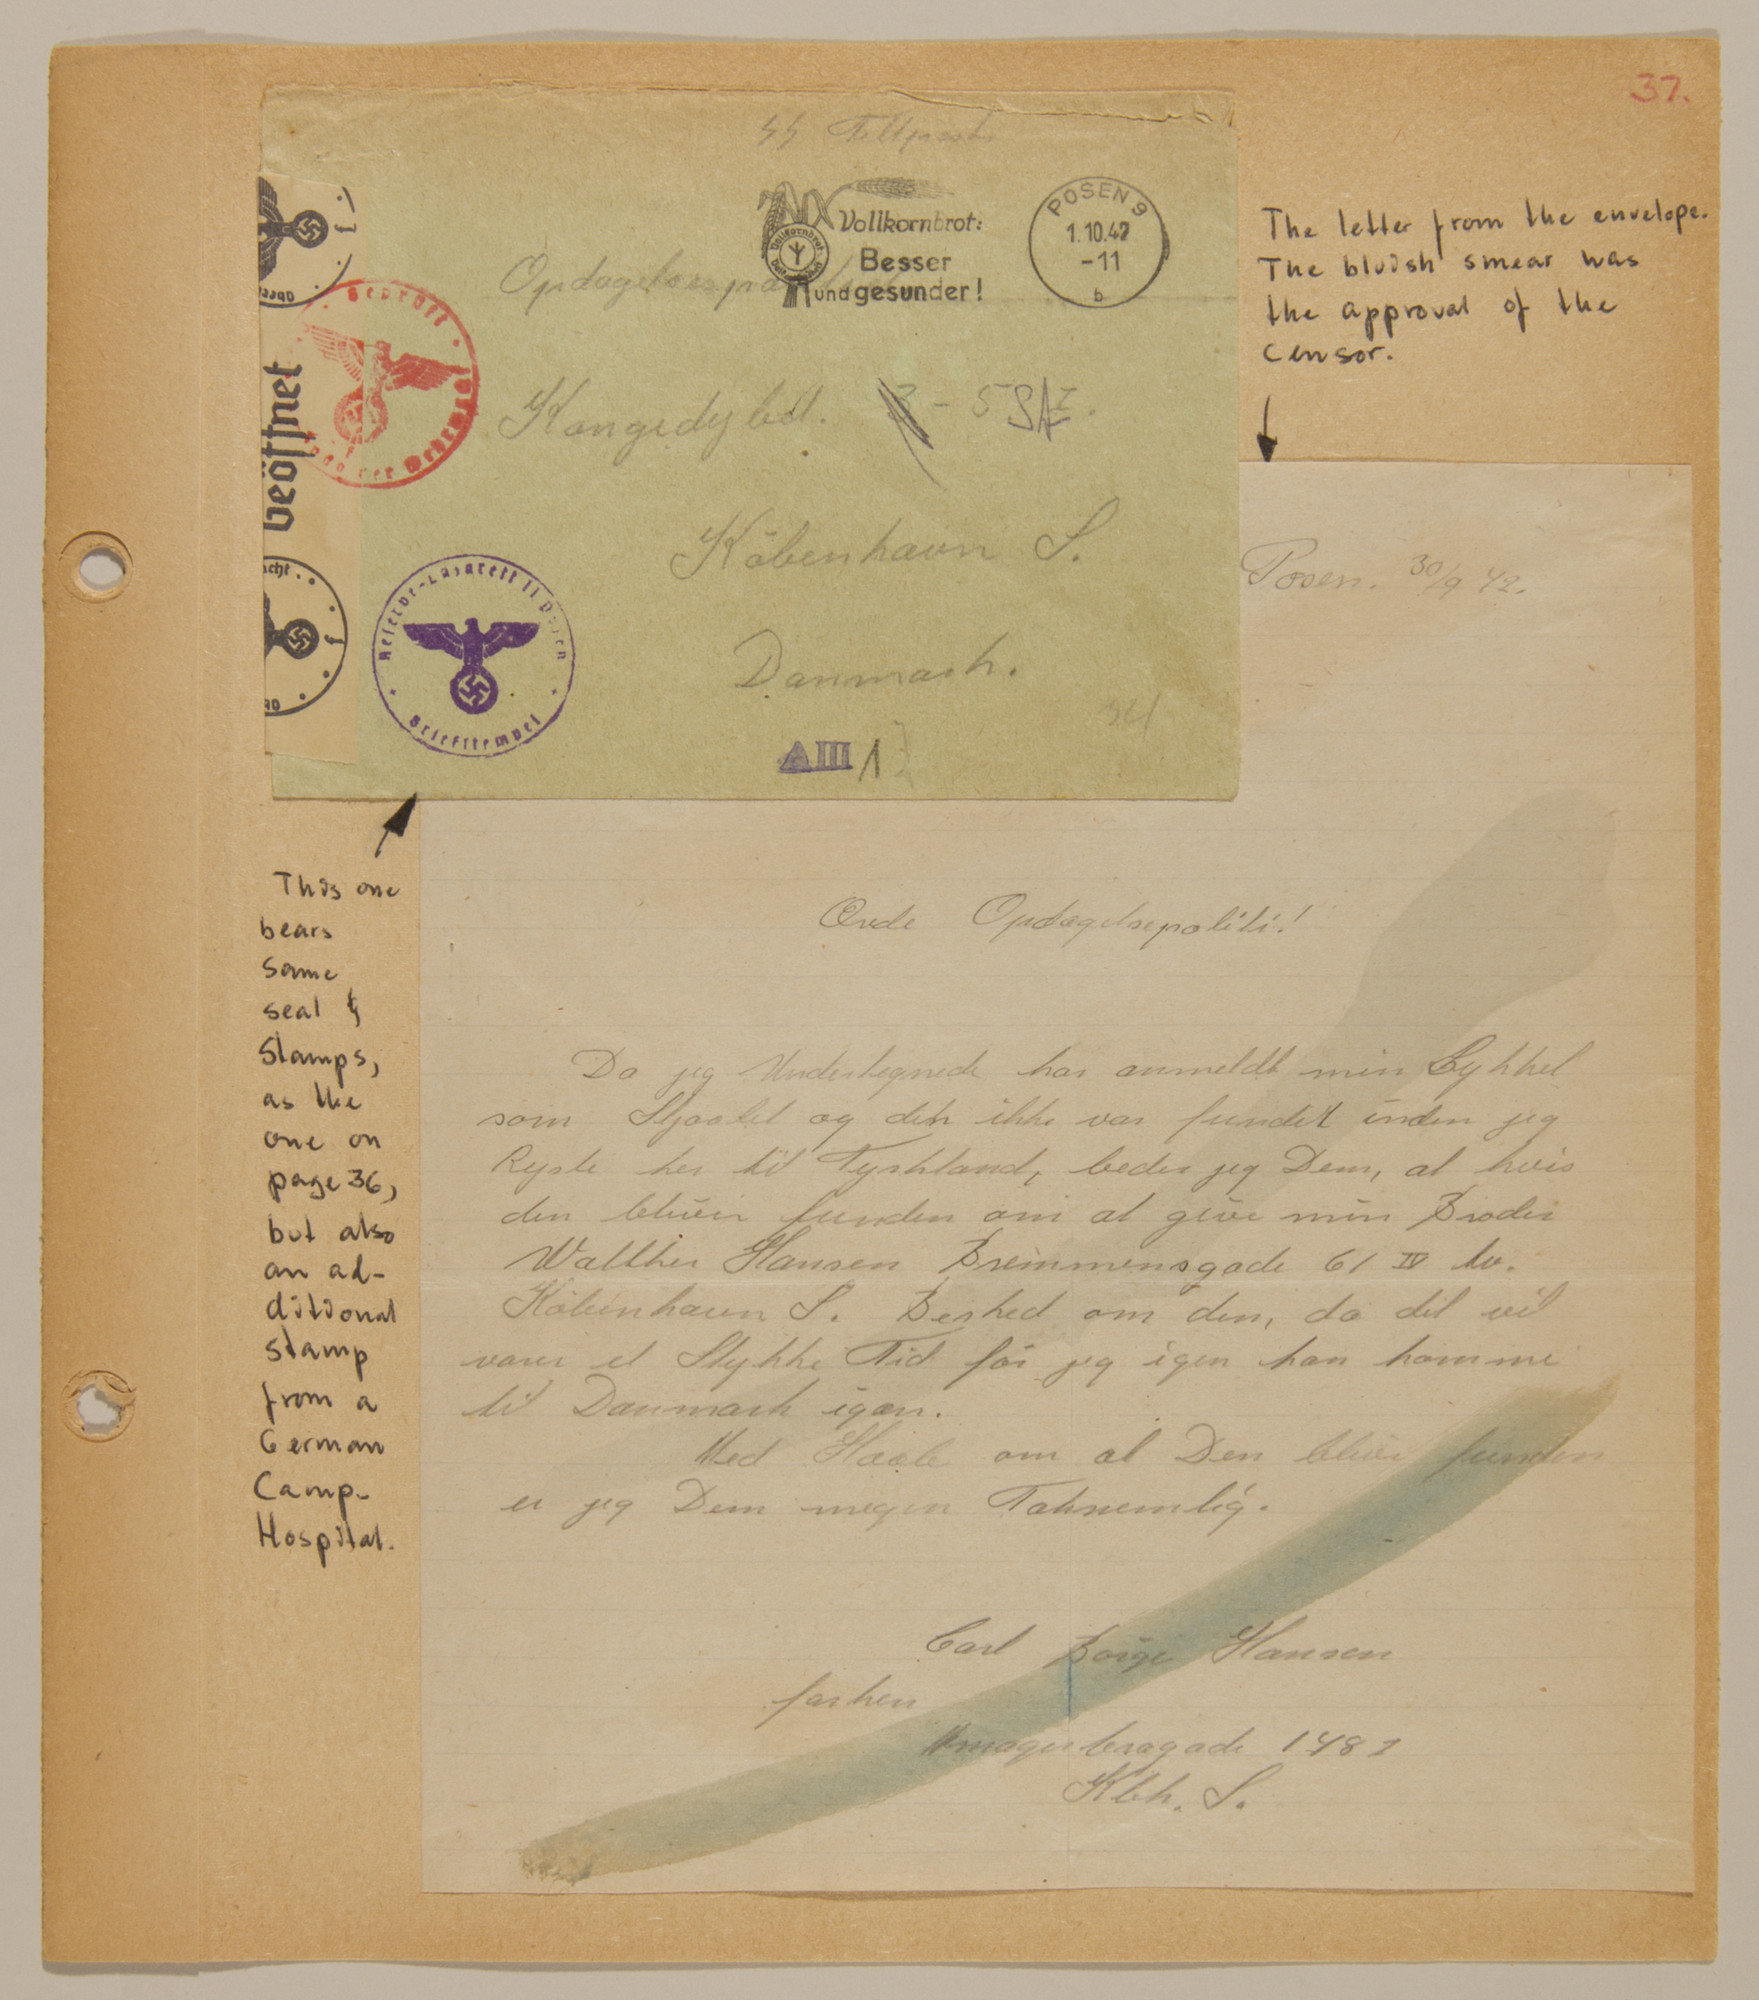 Page from volume four of a set of scrapbooks compiled by Bjorn Sibbern, a Danish policeman and resistance member, documenting the German occupation of Denmark.  This page contains a letter that was opened by German censors and resealed.